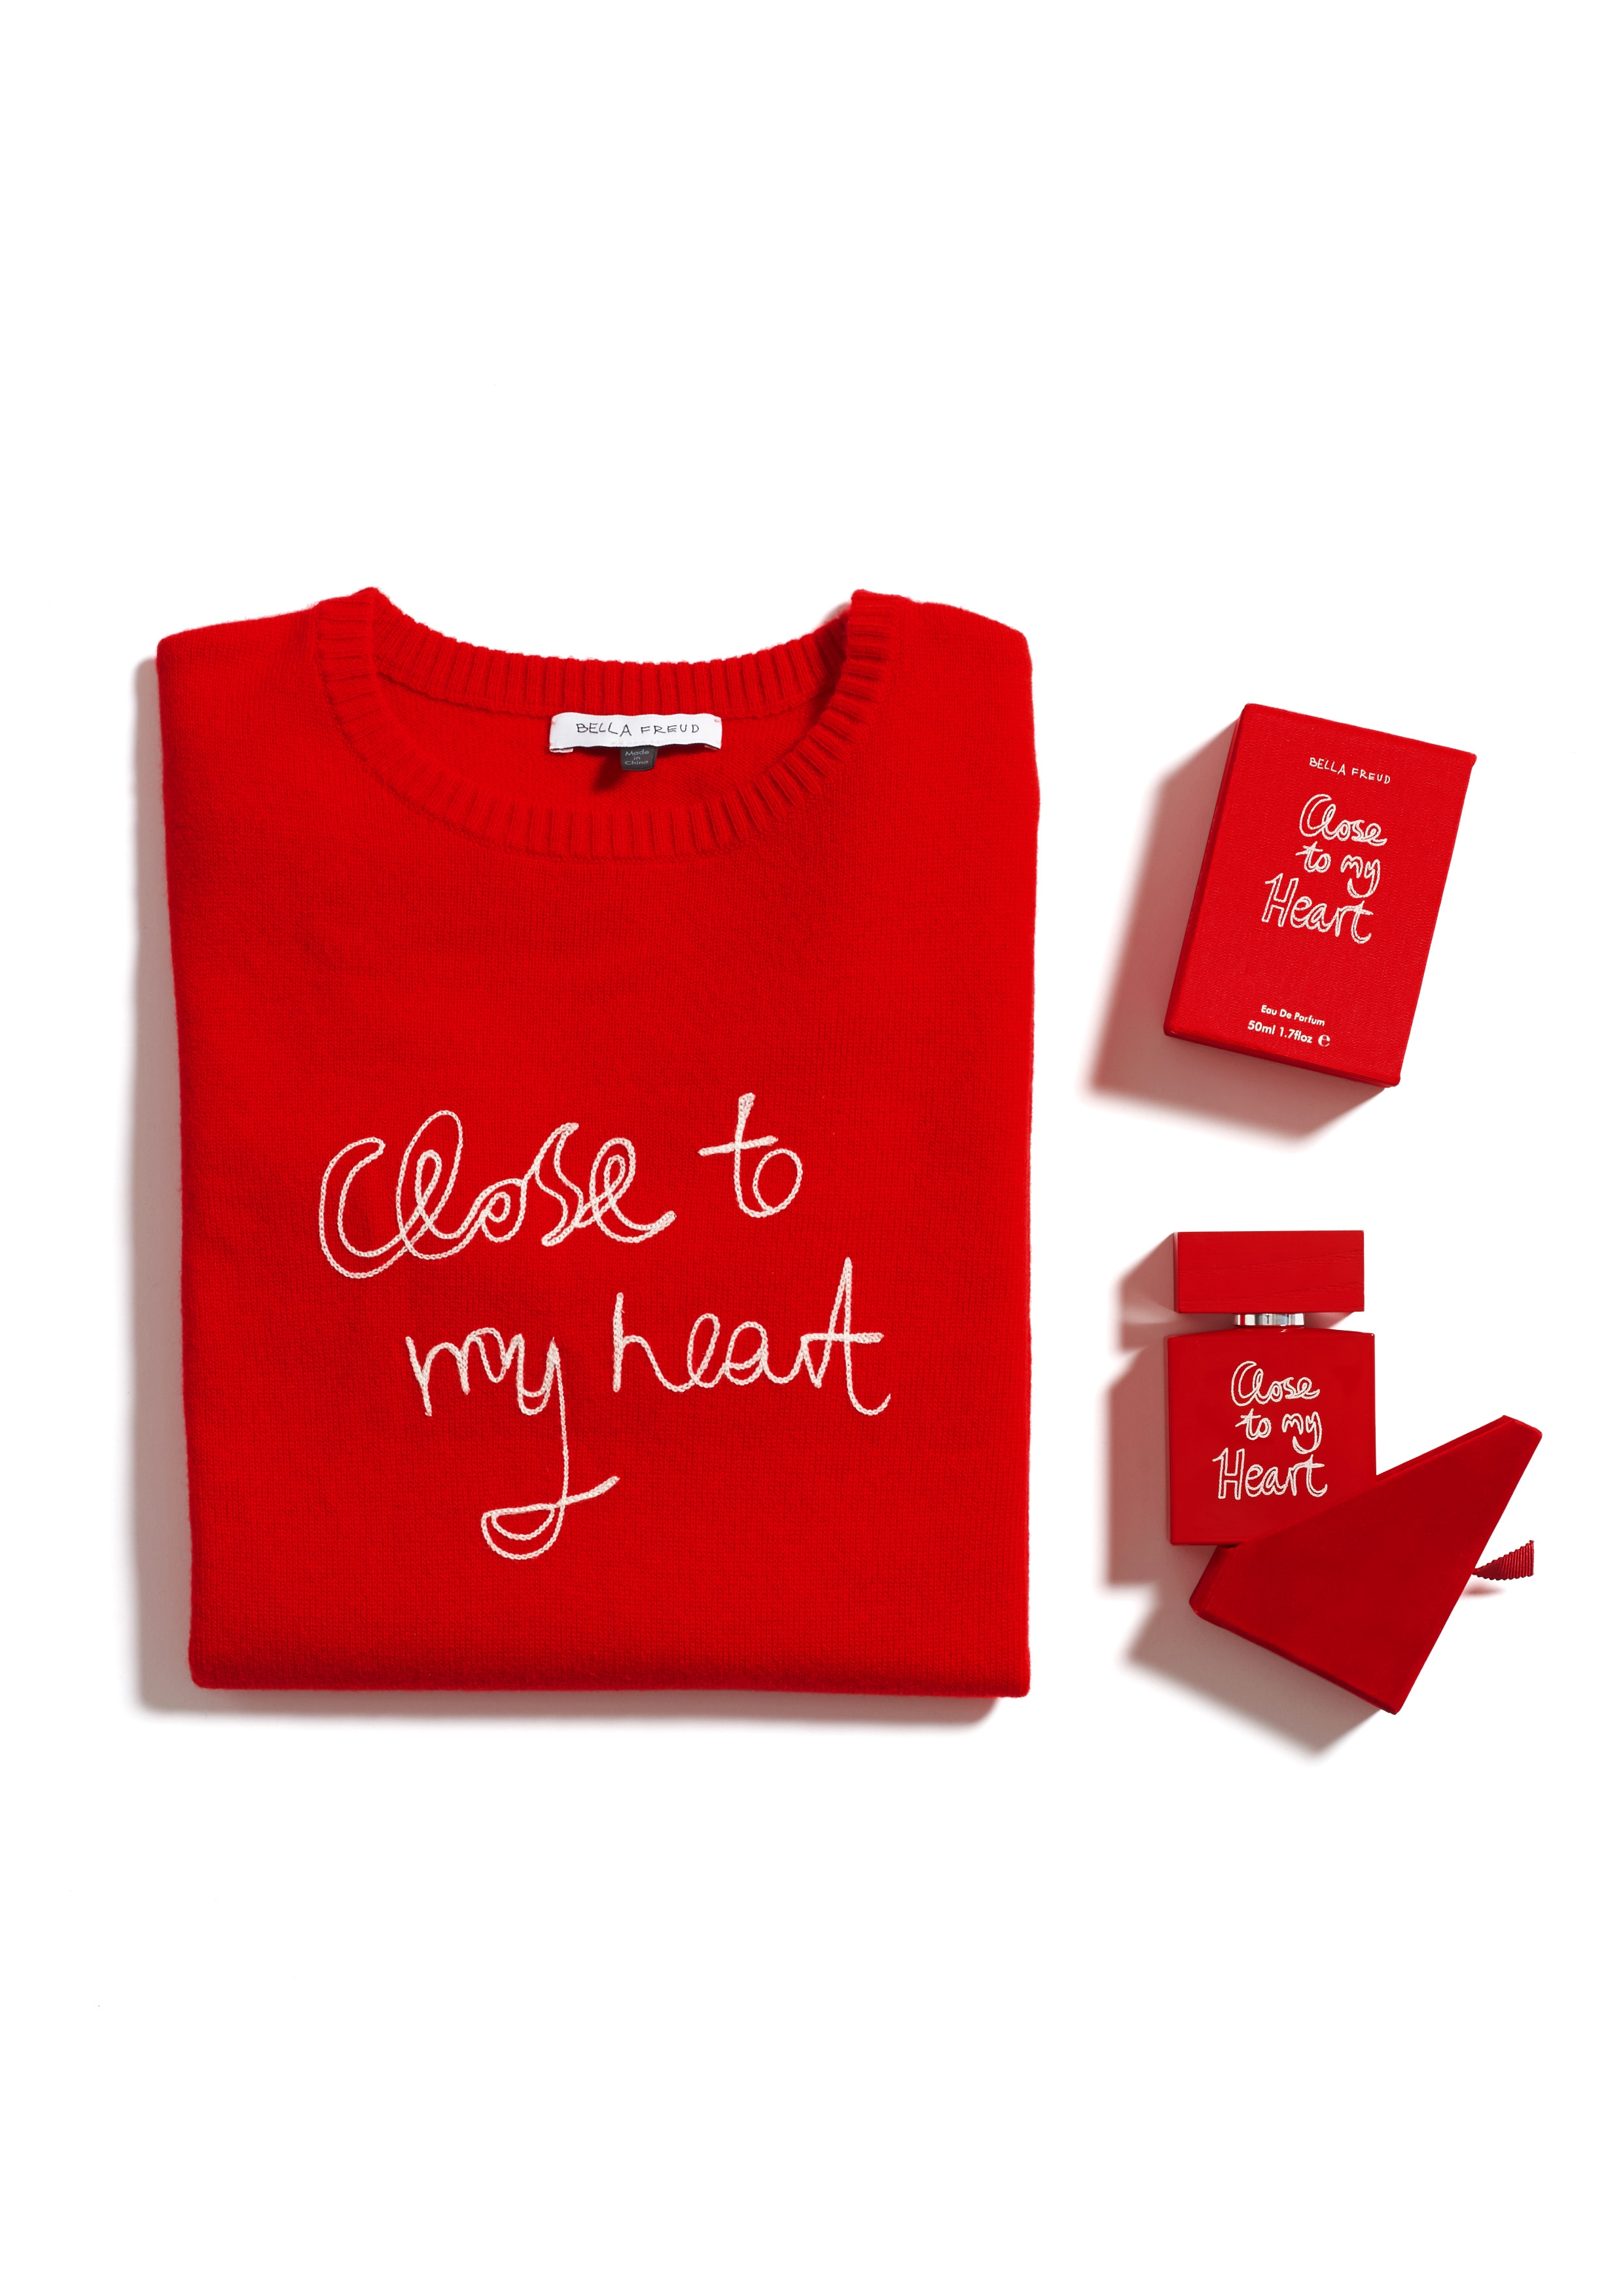 Close to my heart knit £300 and fragrance £95